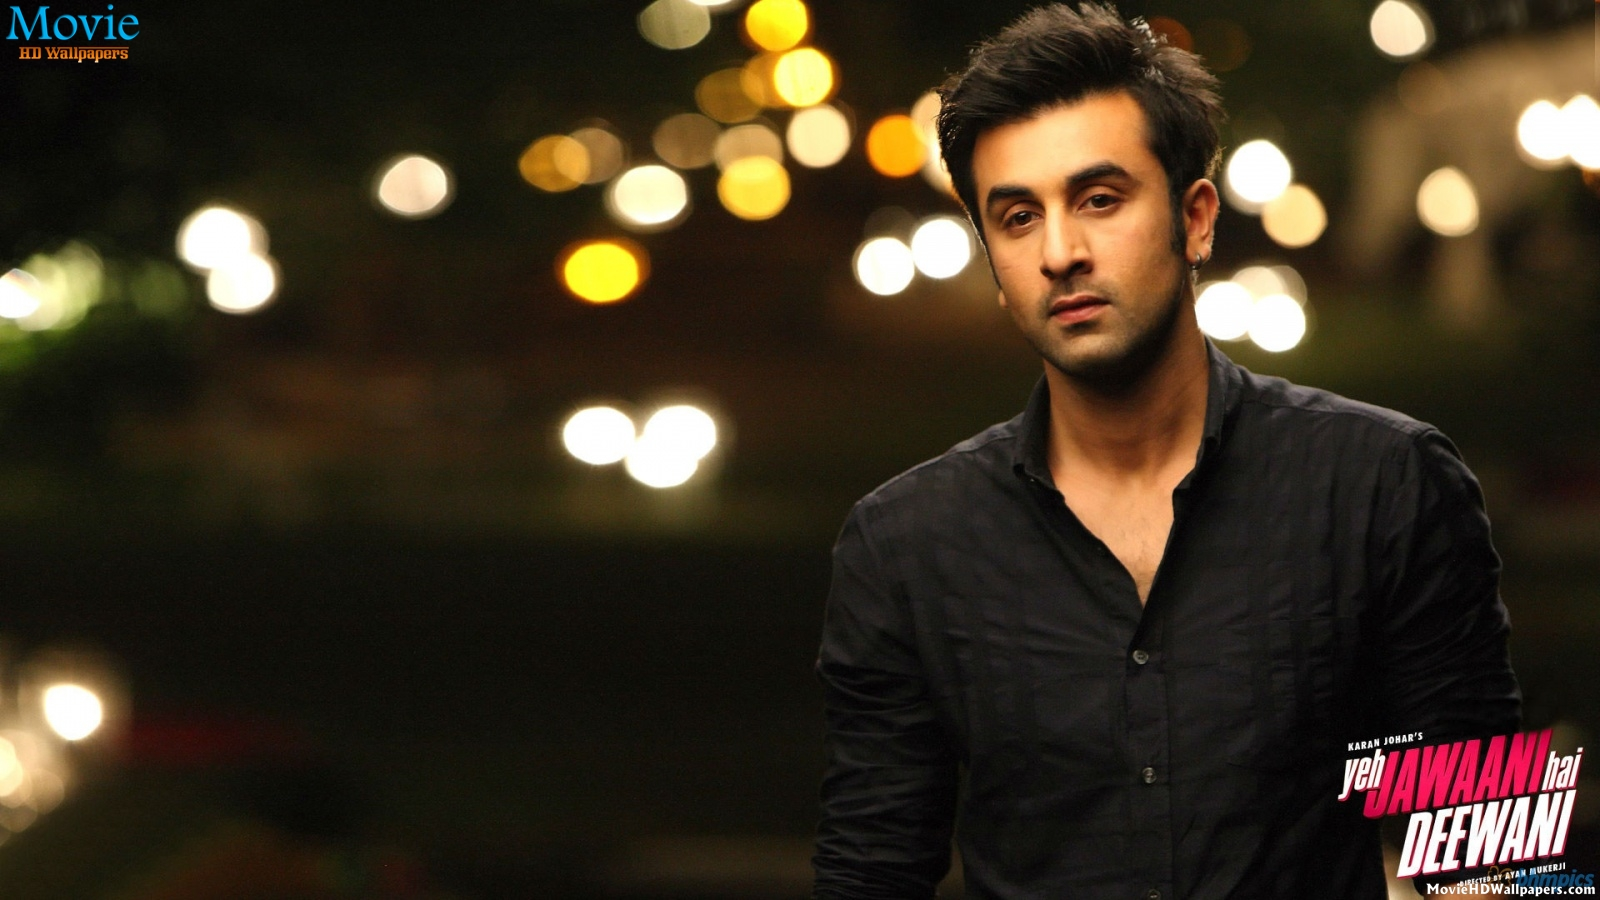 Ranbir Kapoor in Yeh Jawaani Hai Deewani - Movie HD Wallpapers